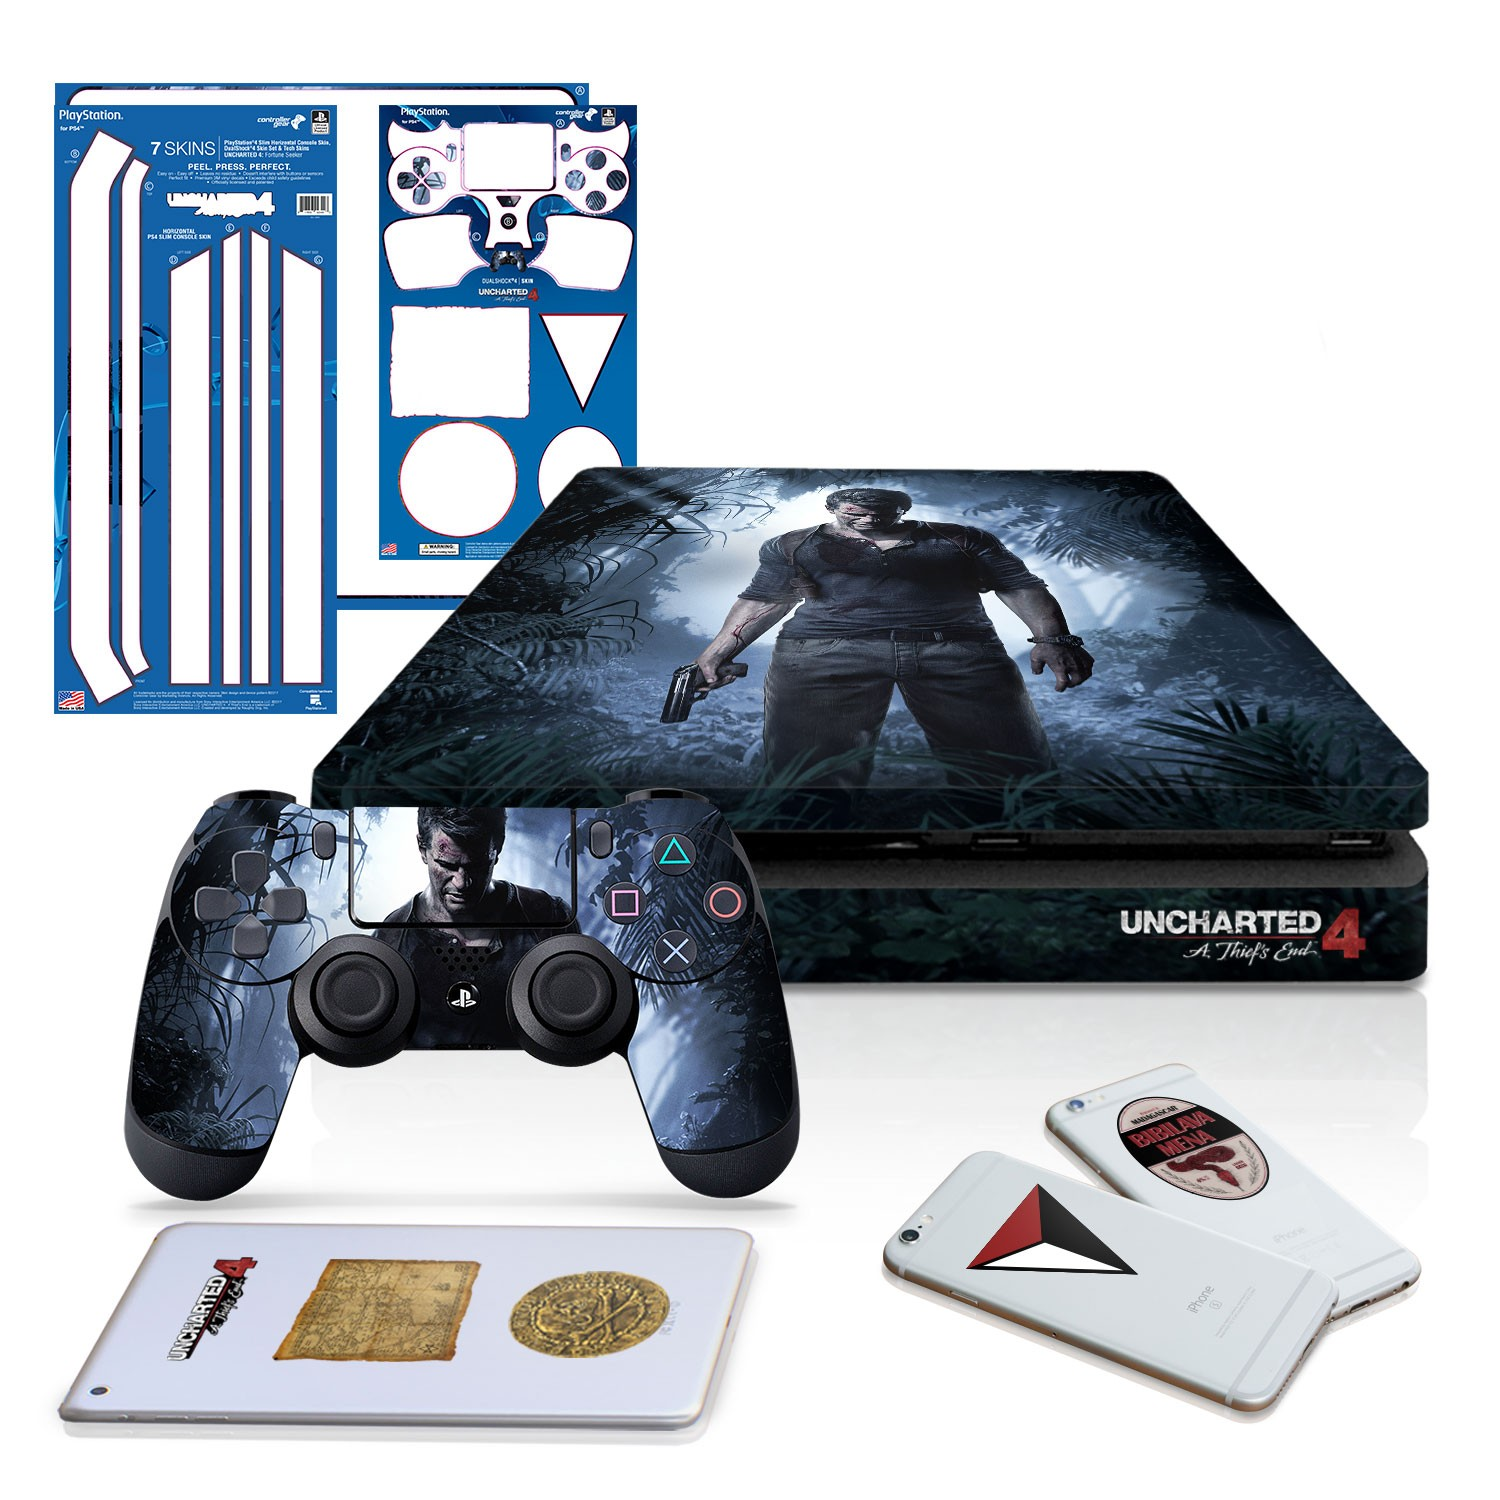 Uncharted 4 A Thief's End - PS4 Slim Horizontal Console and Controller Gaming Skin Pack - Officially Licensed by PlayStation